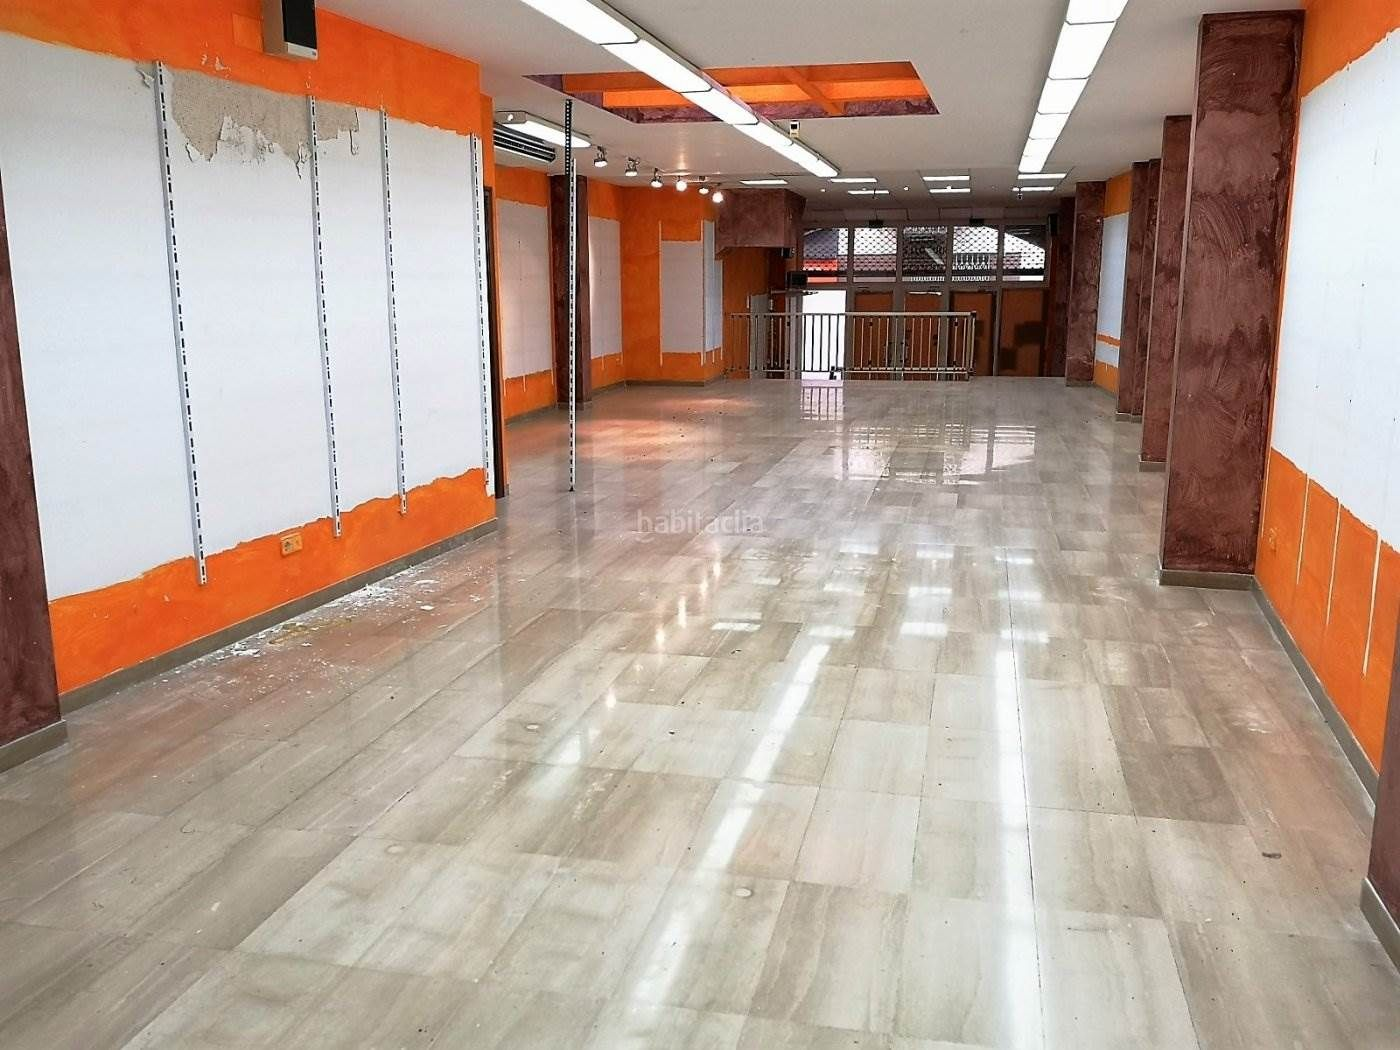 Lloguer Local Comercial en Centre. Alquiler local en igualada zona centro 240m2!!